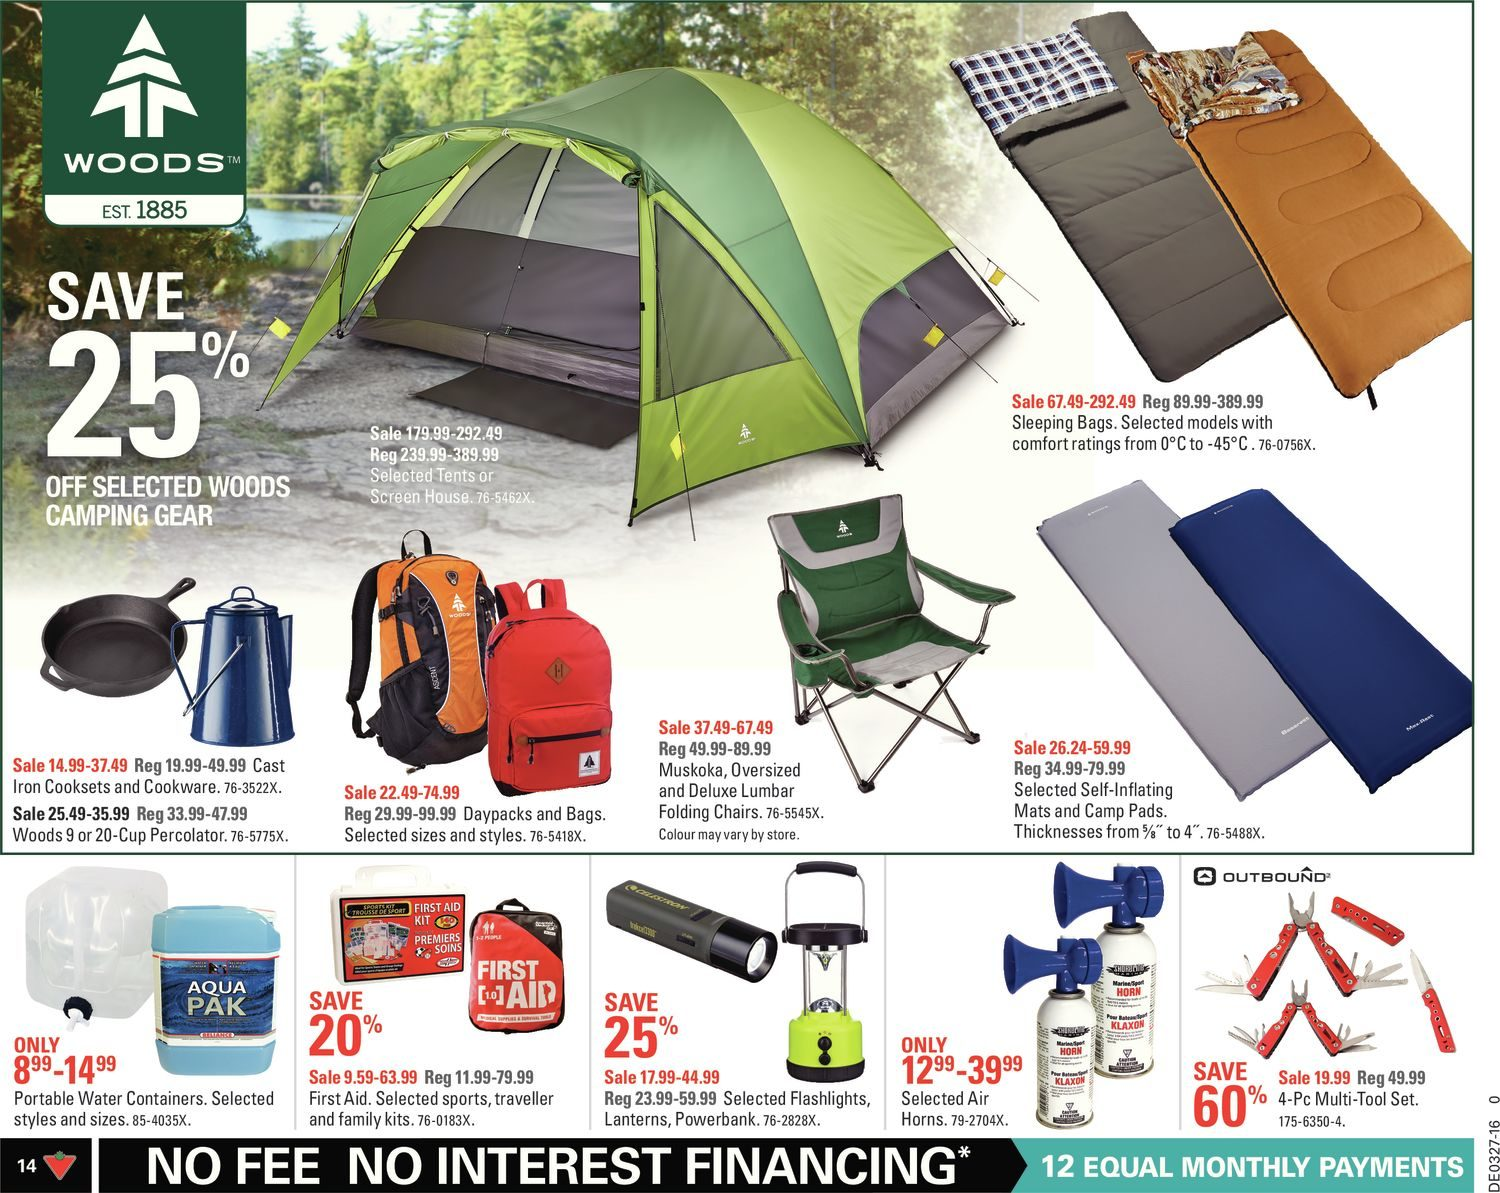 Canadian Tire Weekly Flyer - Weekly - Celebrate With Us Canada! - Jul 1 – 7  - RedFlagDeals.com